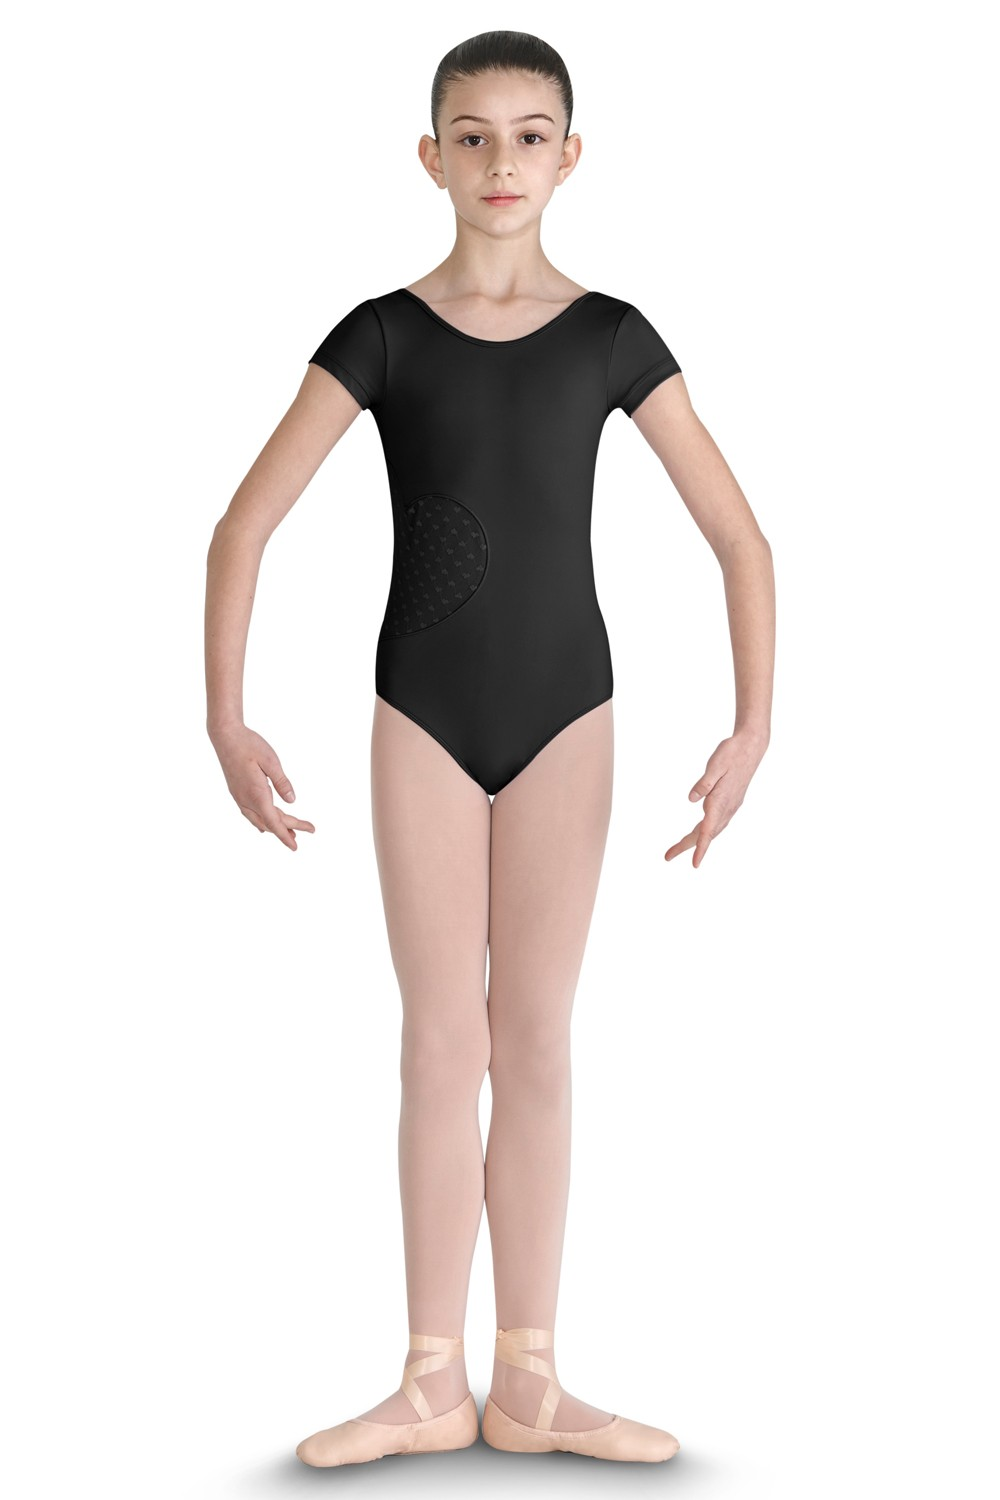 Children's Dance Leotards